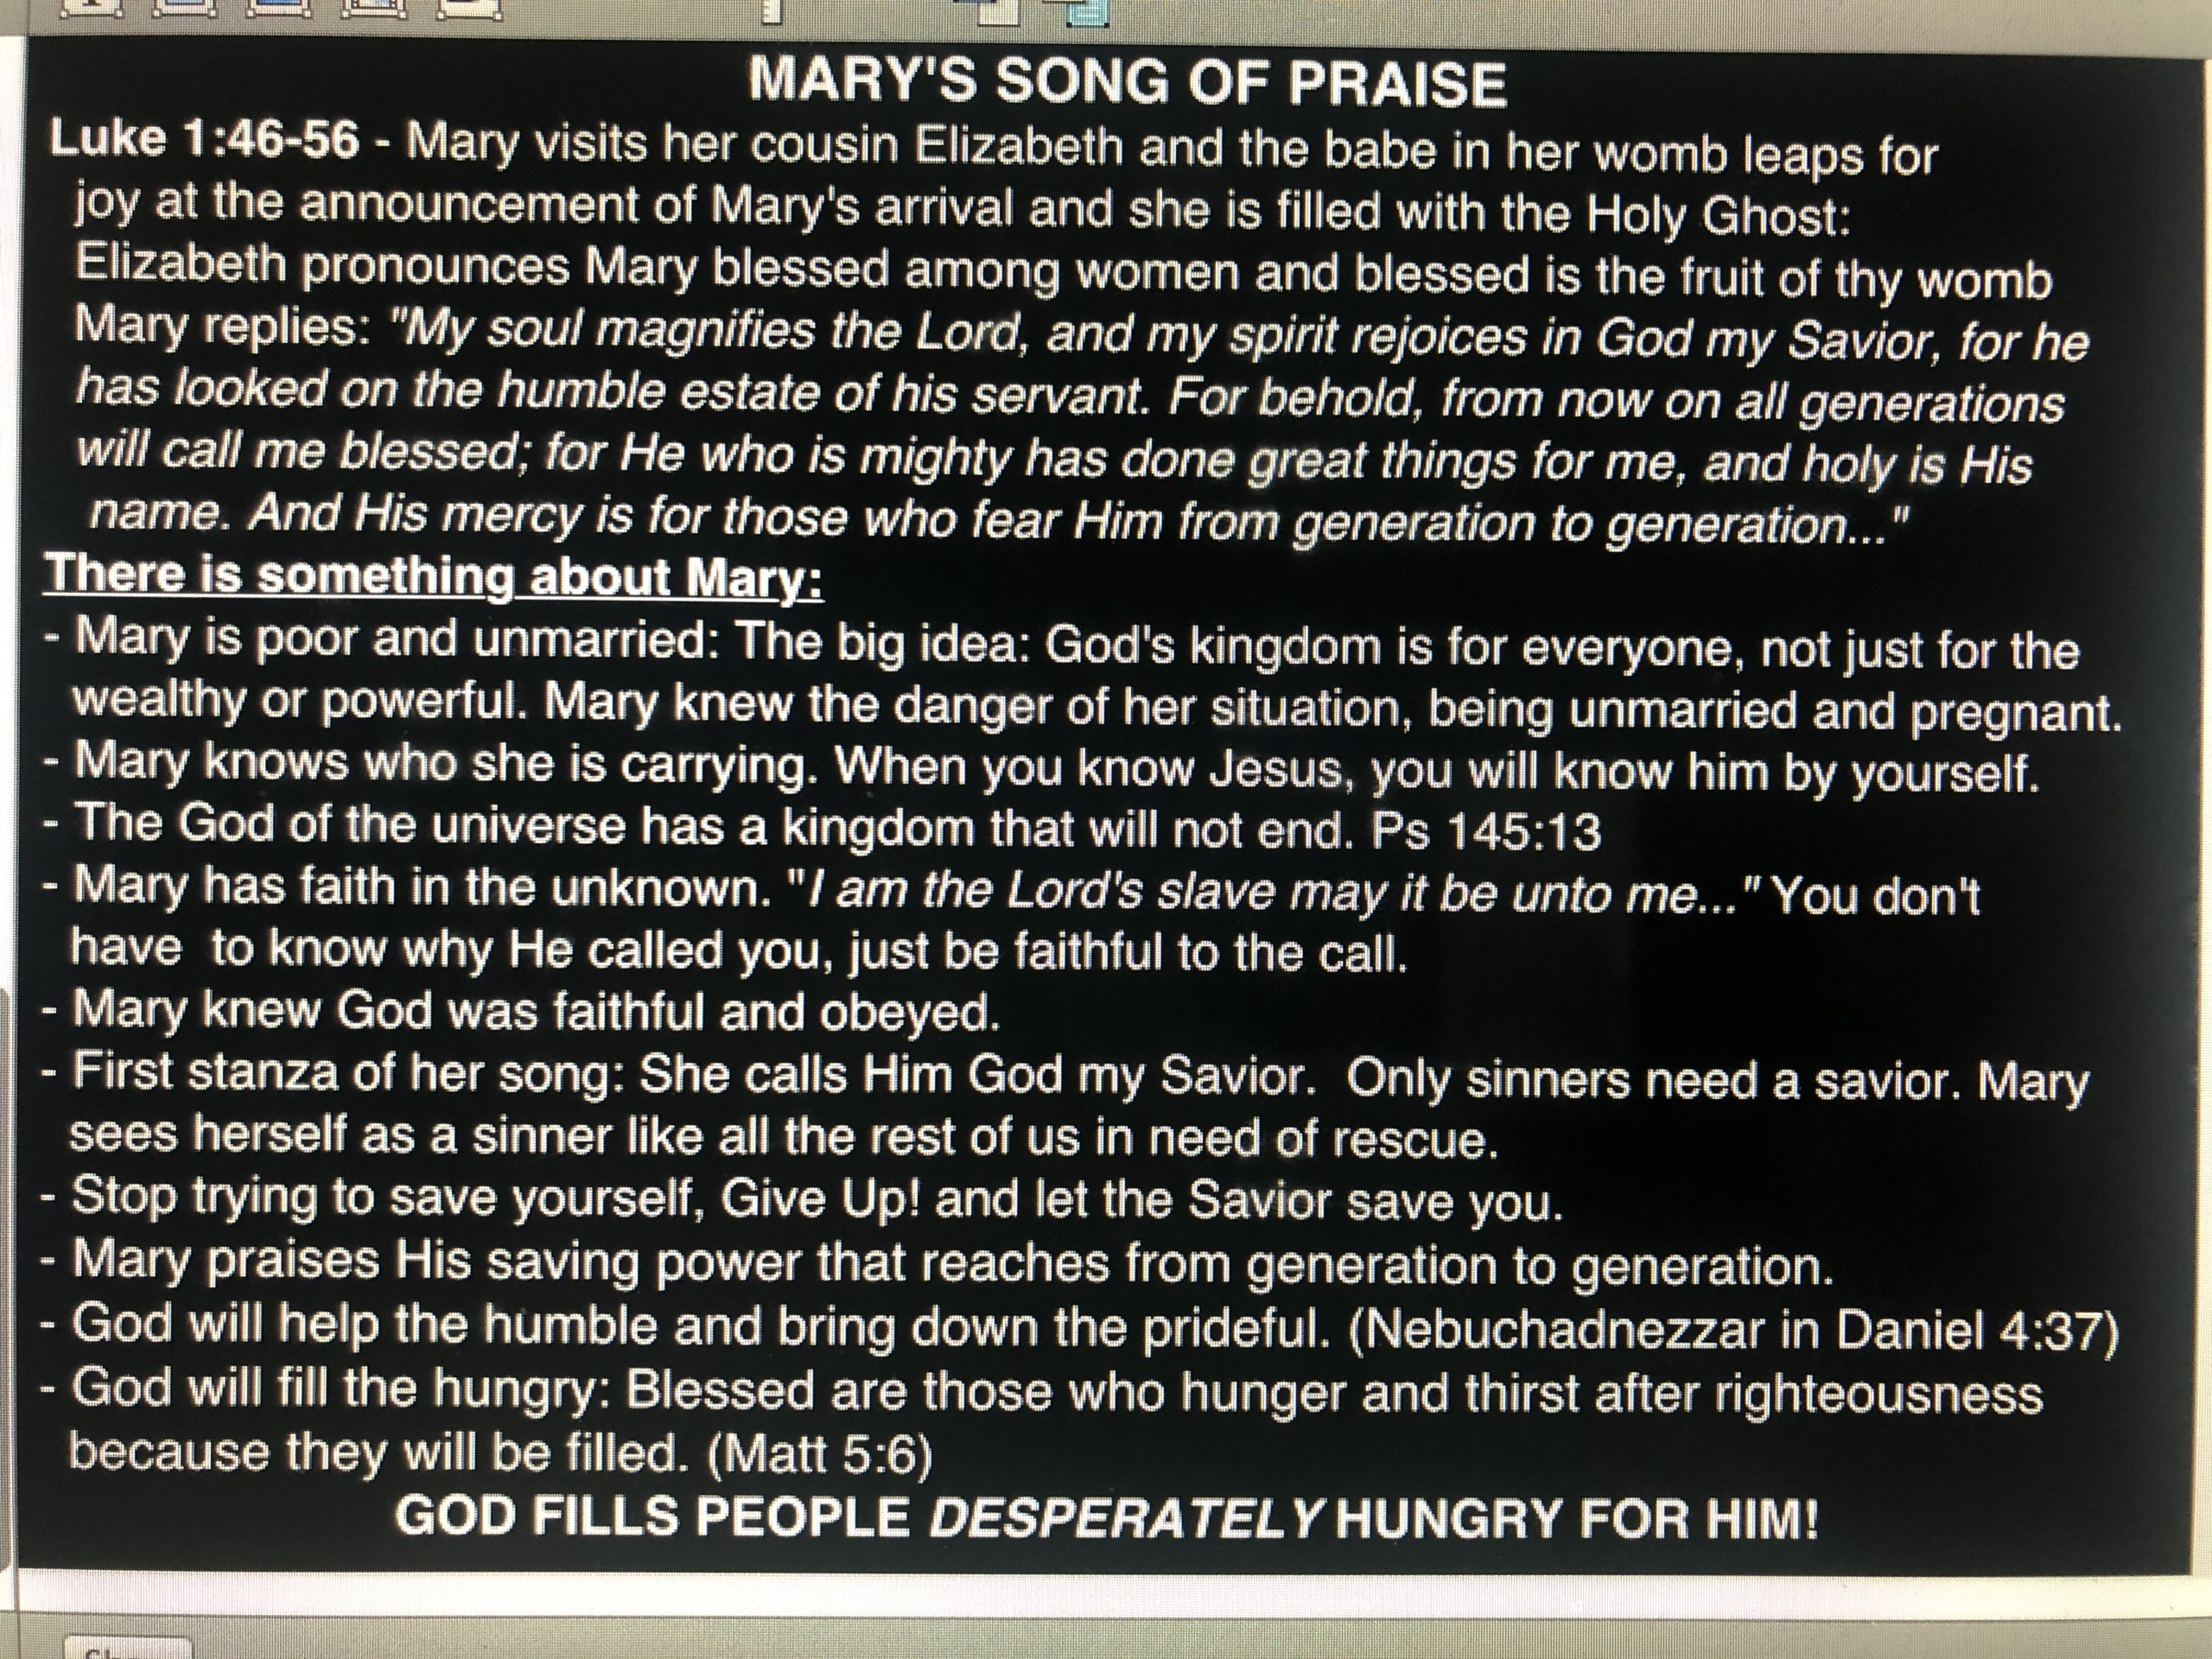 Mary's Song of Praise - December 1, 2019